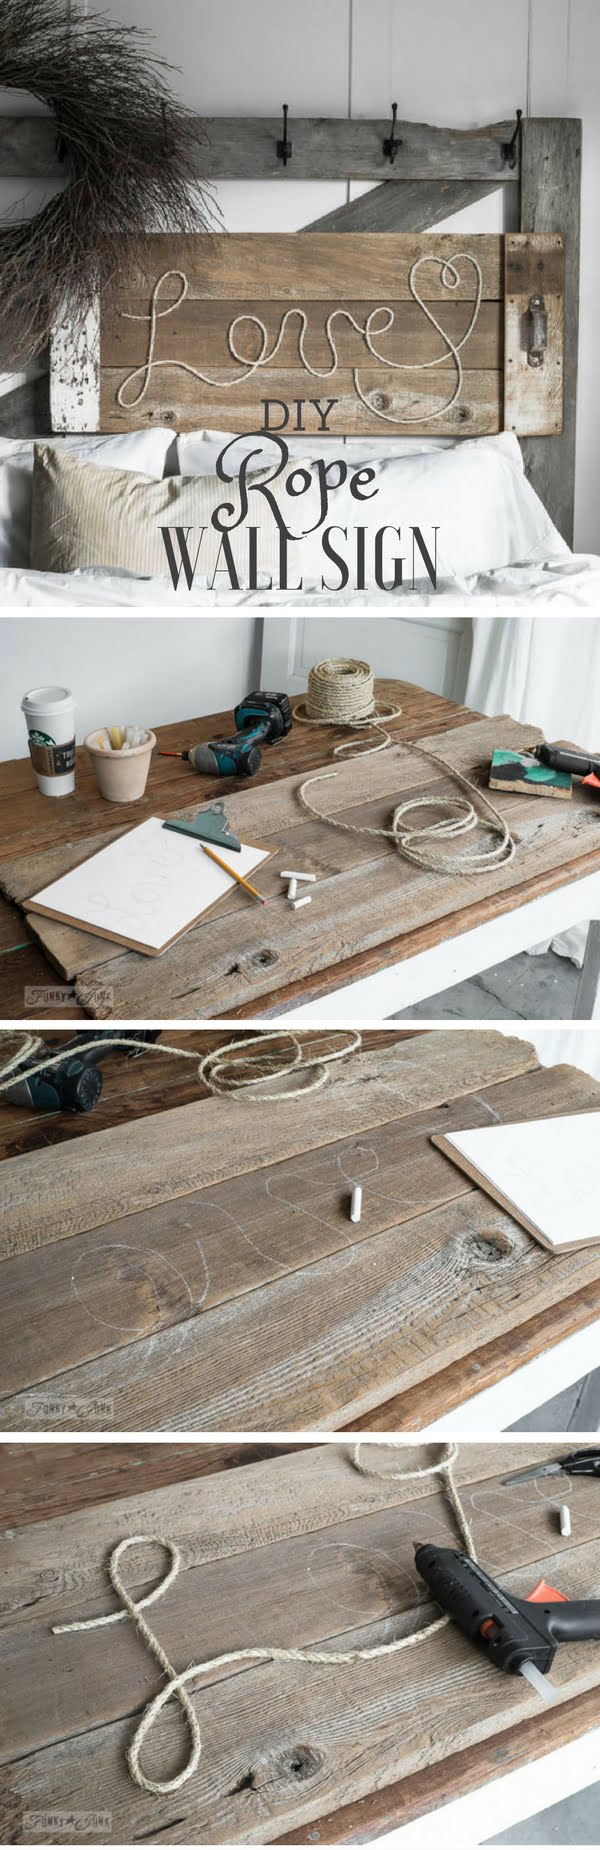 Check out the tutorial: #DIY Rustic Rope Wall Sign